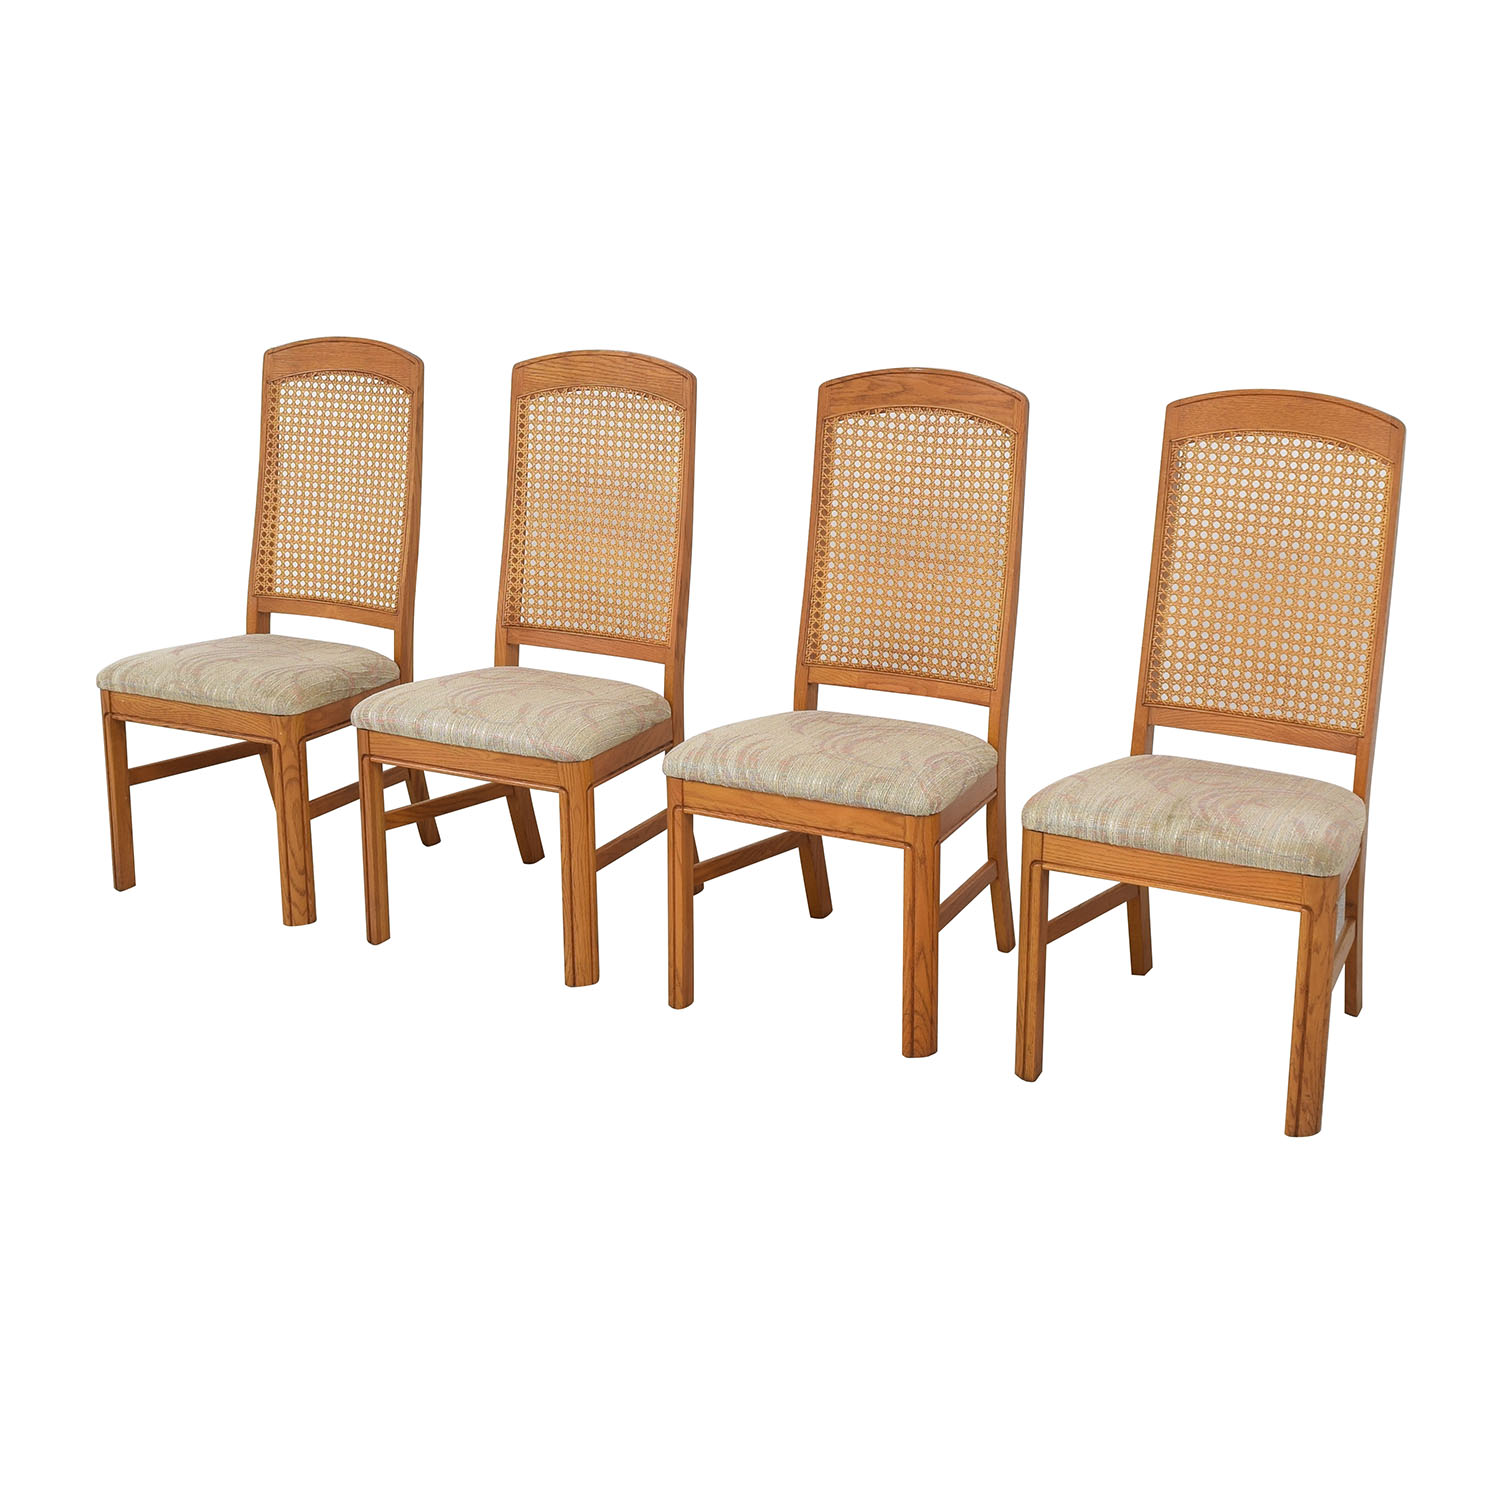 Keller Dining Chairs / Dining Chairs